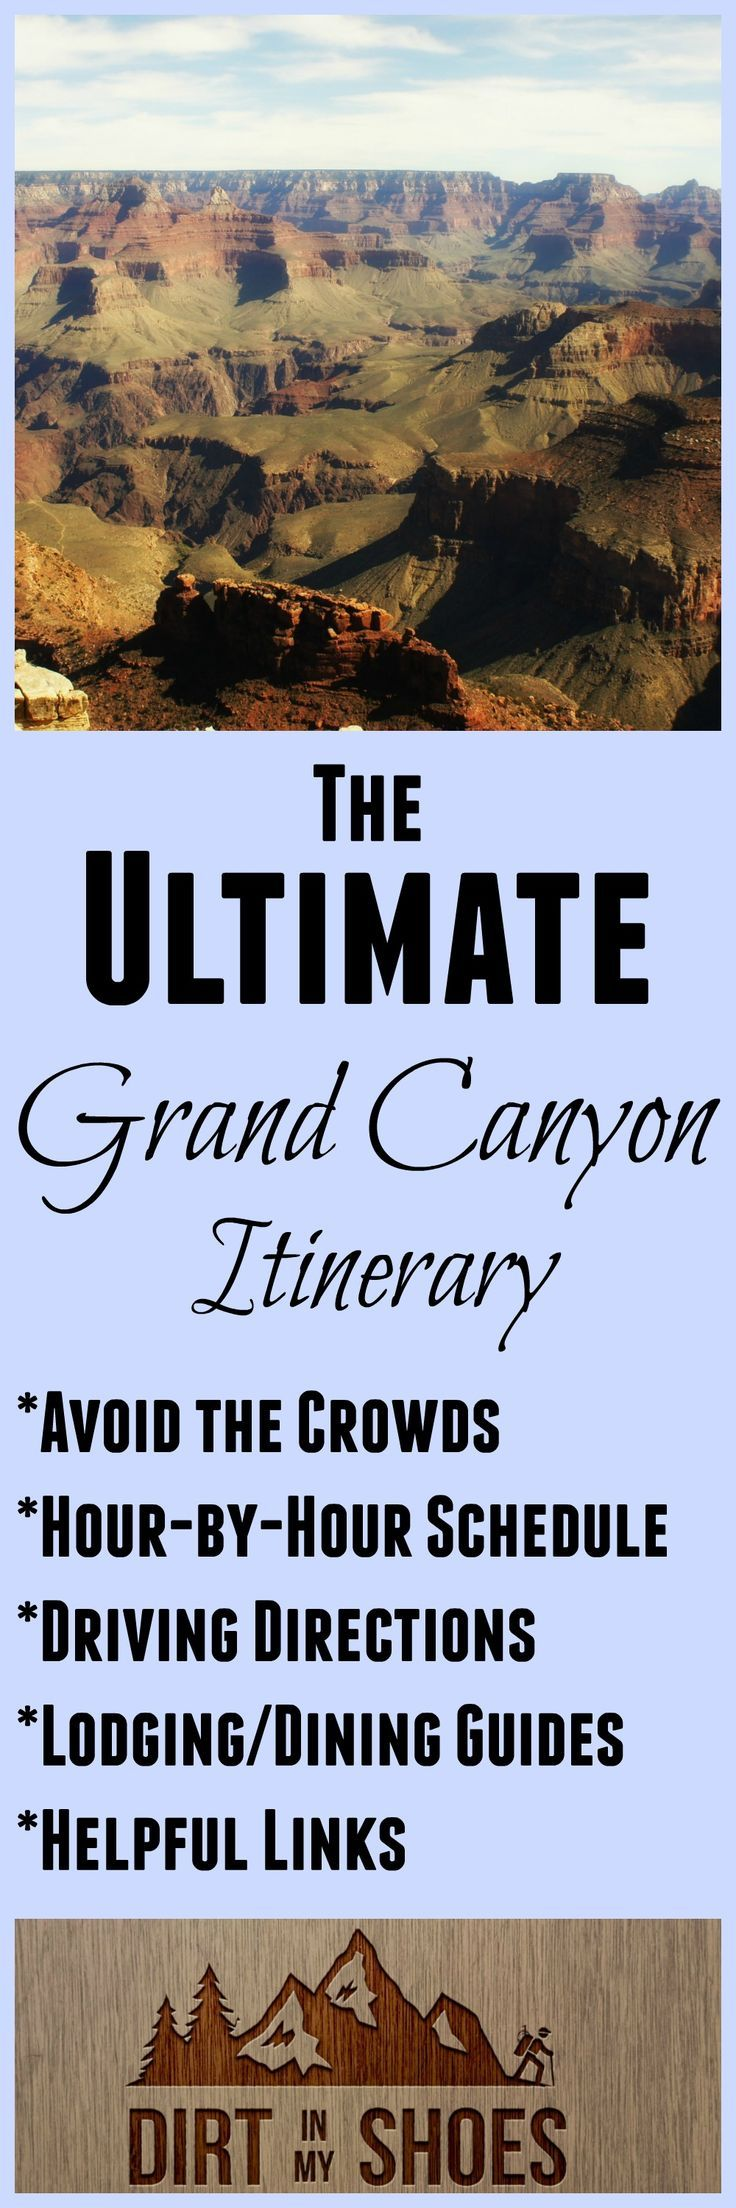 See the best that Grand Canyon National Park has to offer with this amazing itinerary written by a former park ranger. This made our trip AWESOME!!